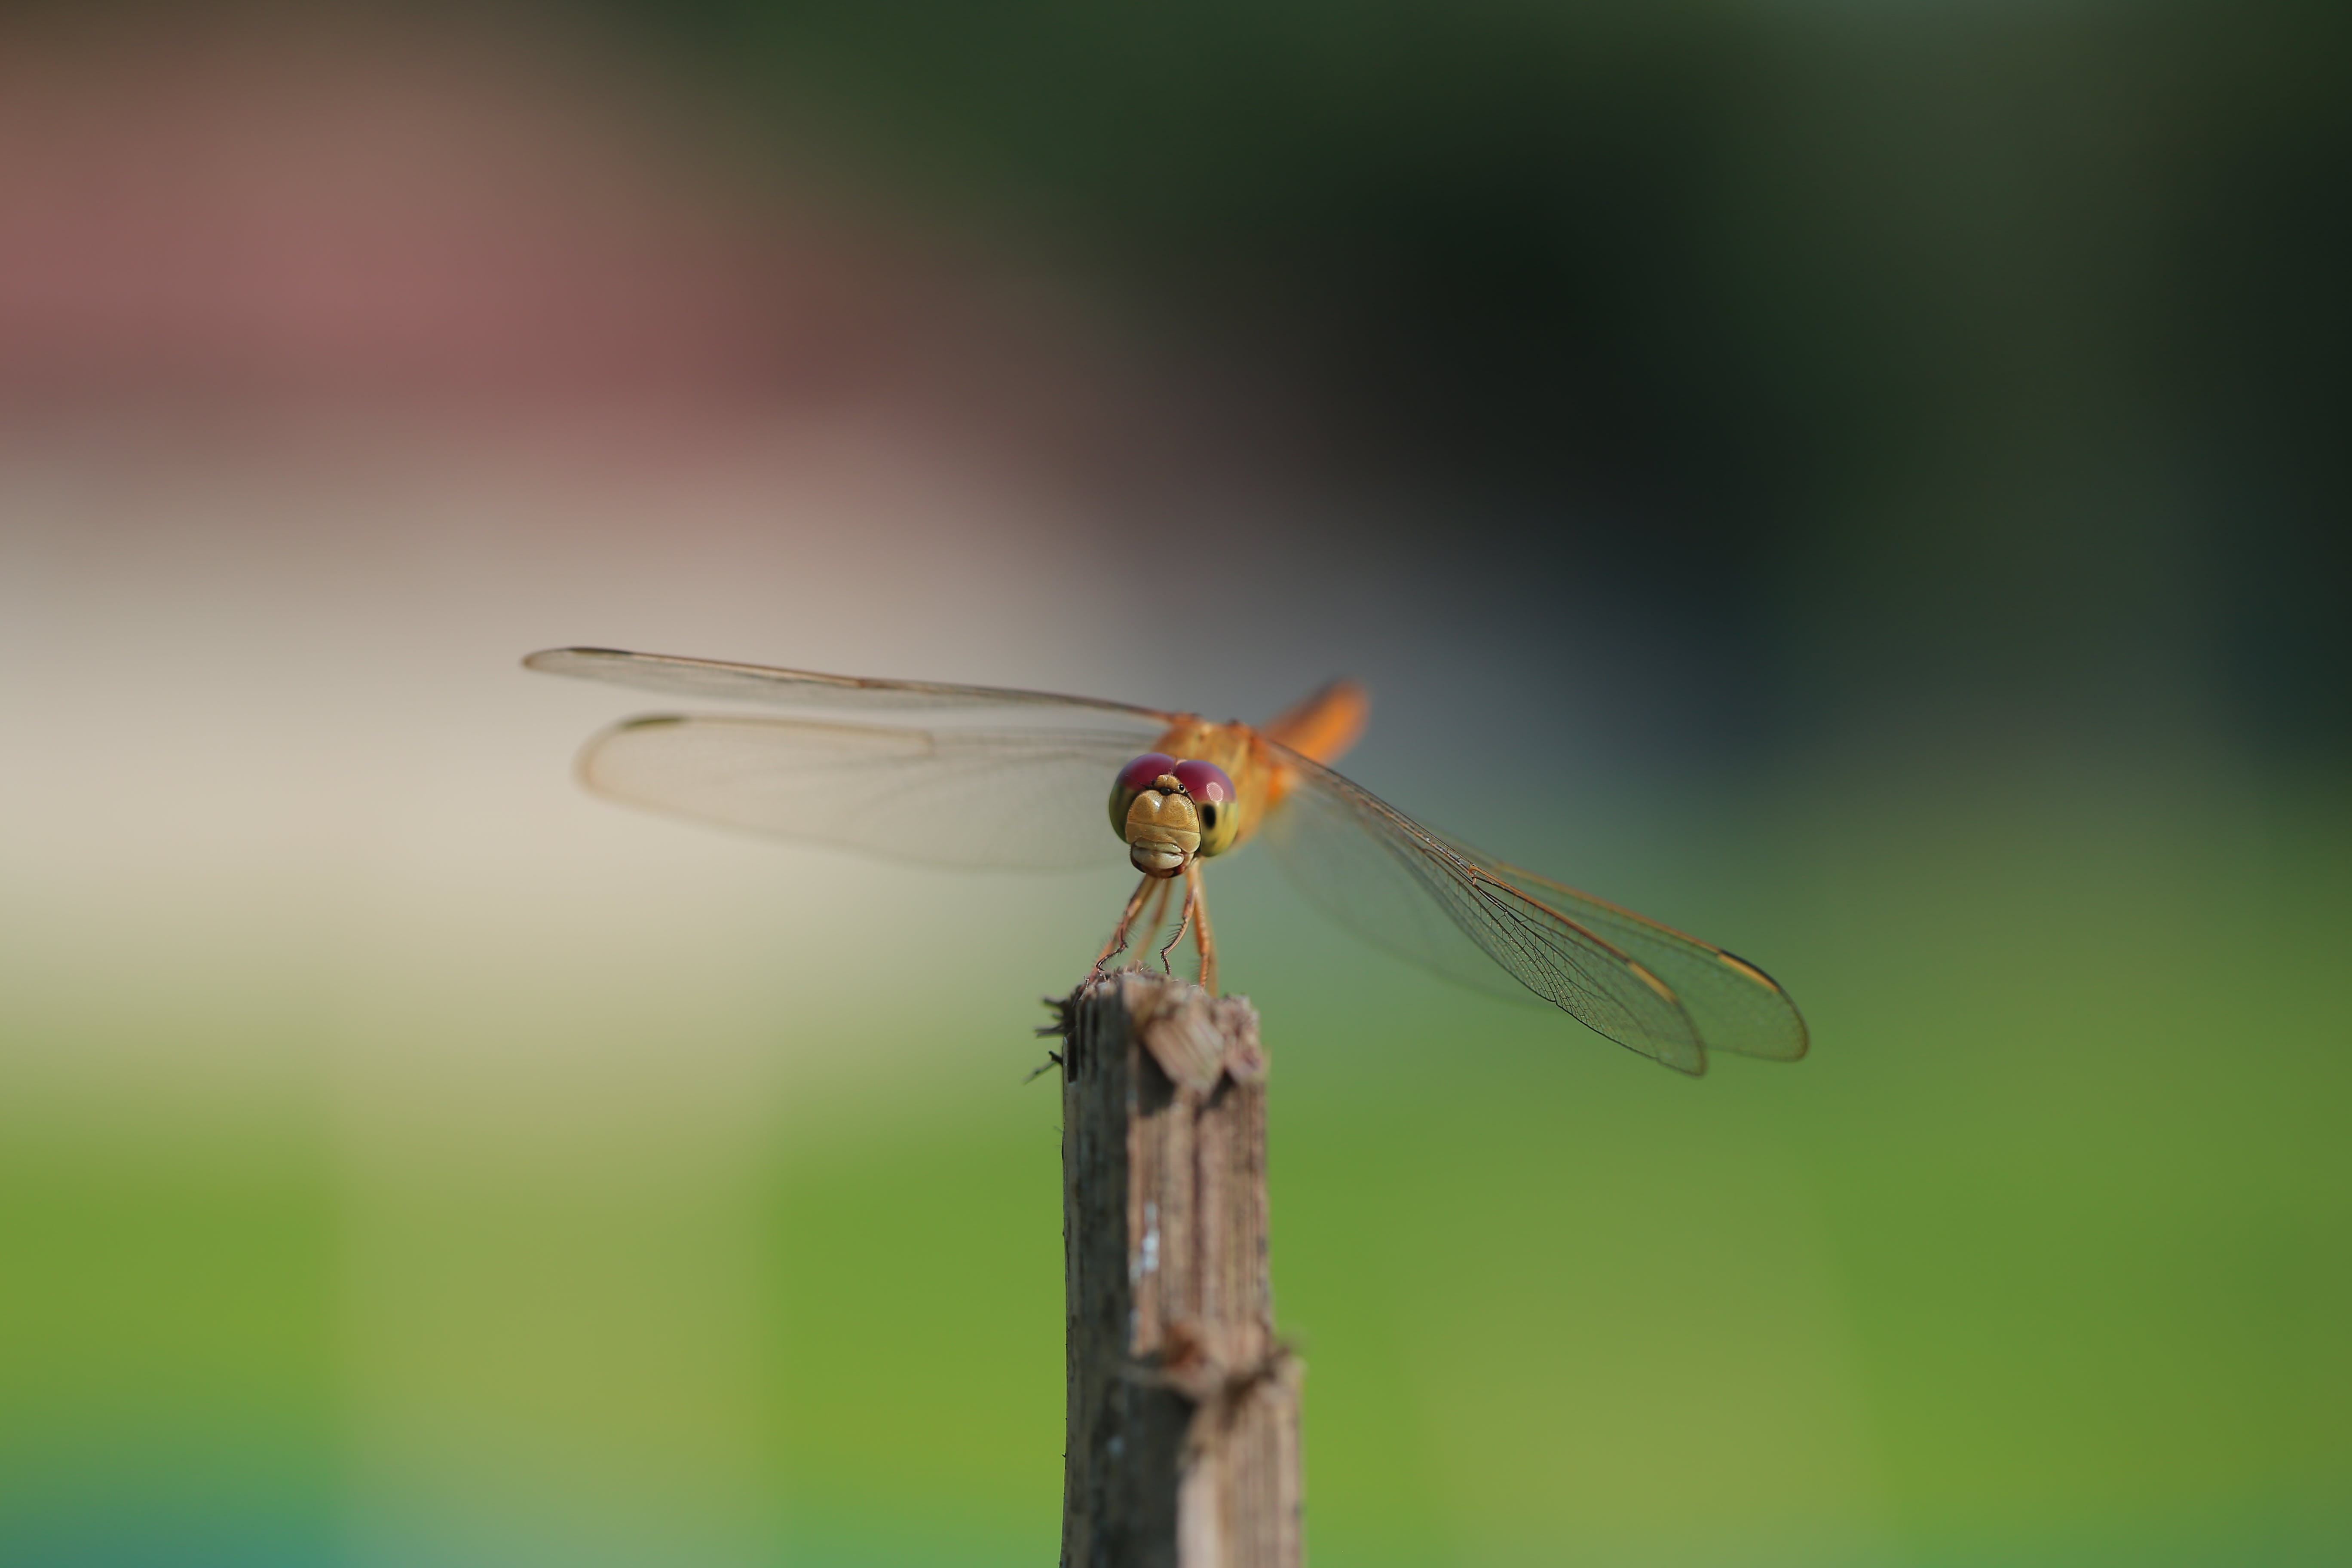 Dragonfly on Shallow Focus Lens